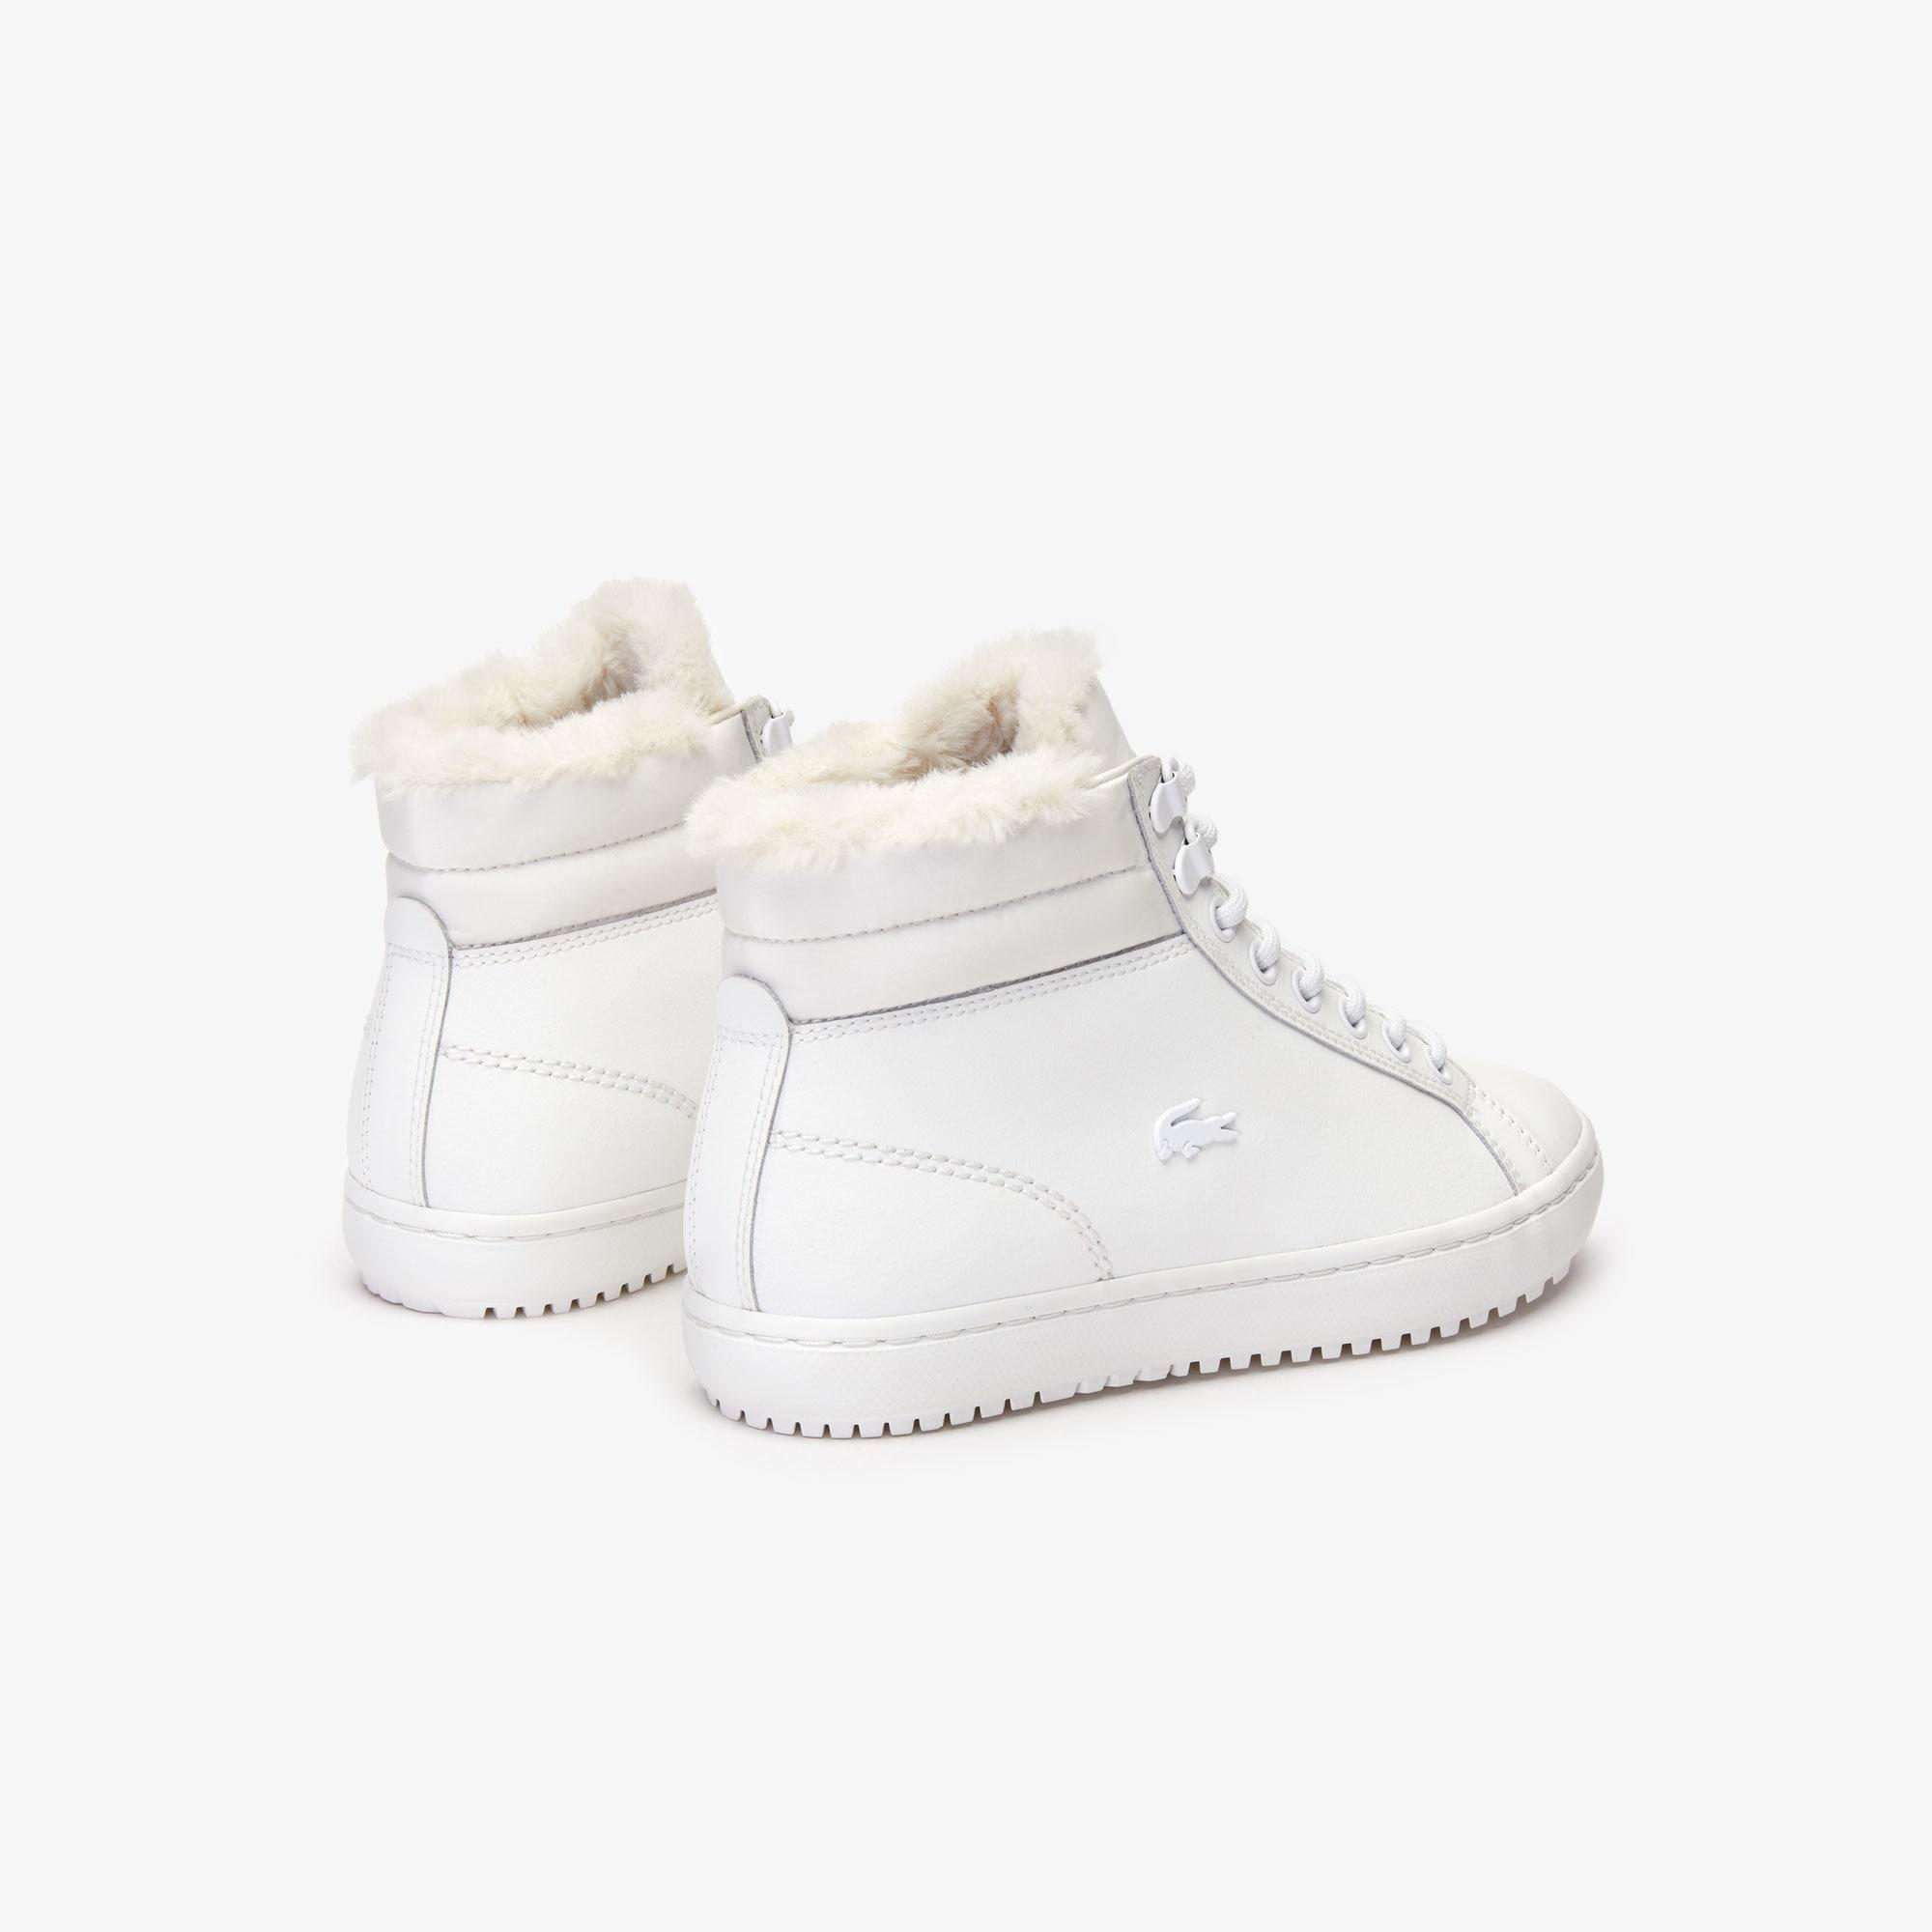 Lacoste Straightset Thermo Leather